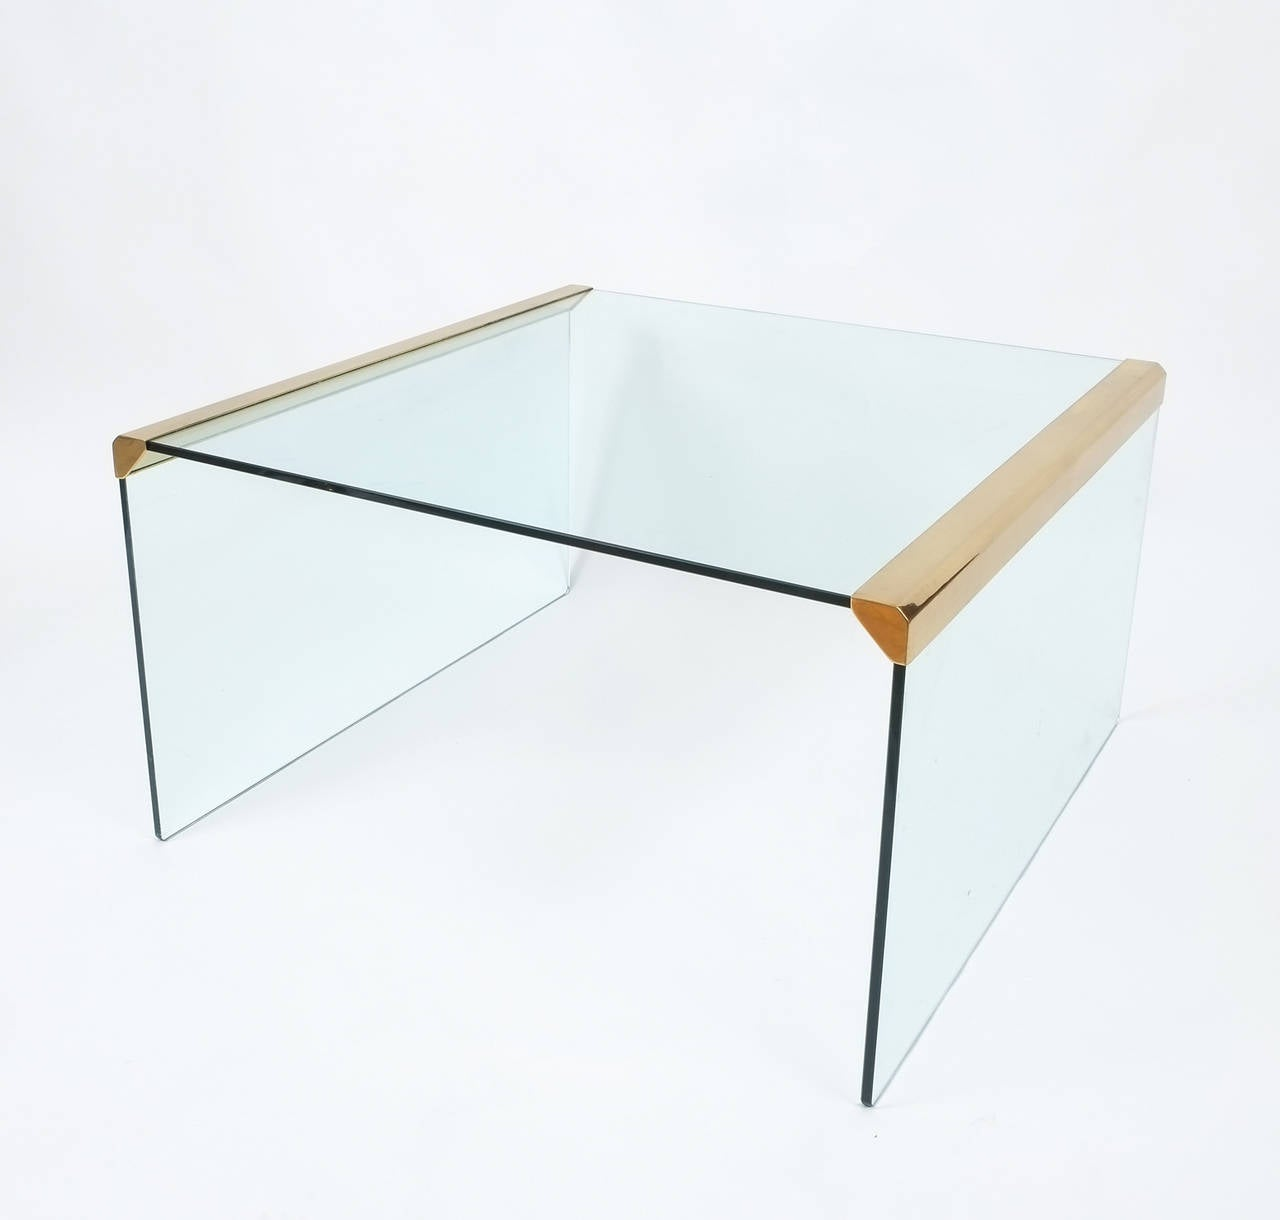 Italian clear glass coffee table by pierangelo galotti for galotti and radice for sale at 1stdibs Clear coffee table